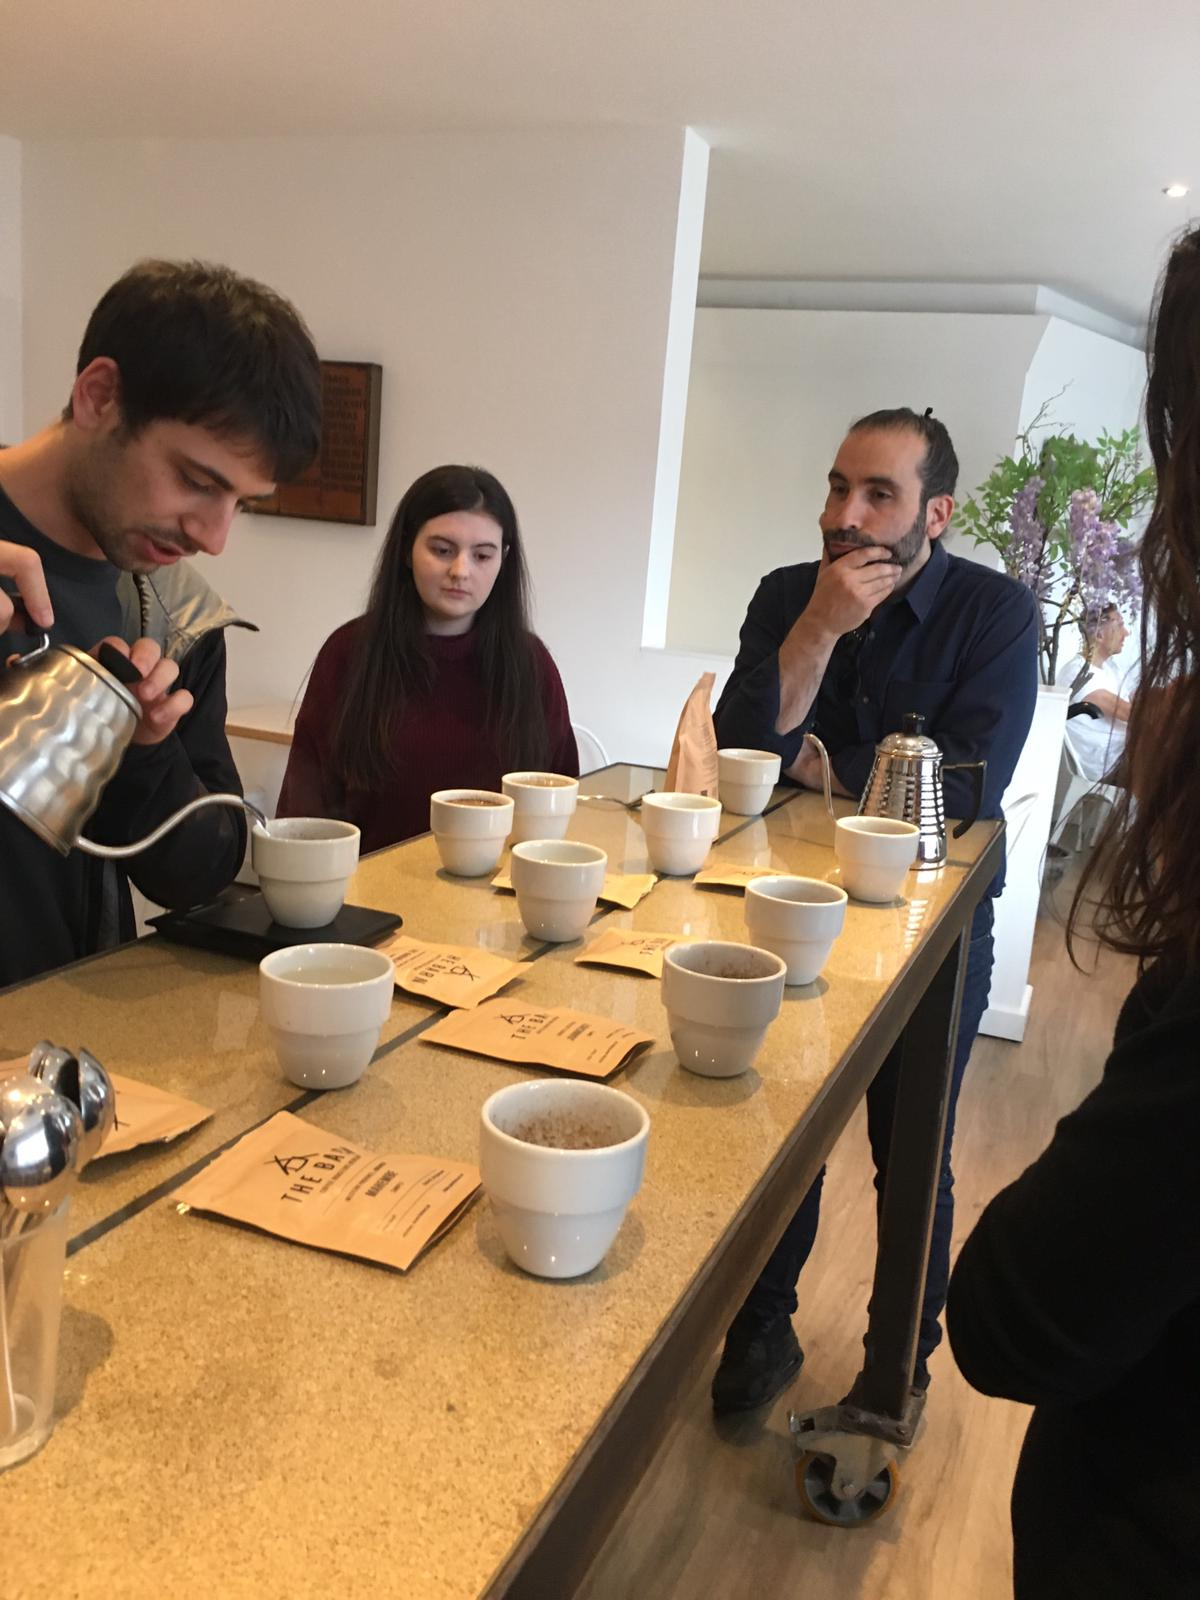 barn cupping august 2019 photo 5.jpg